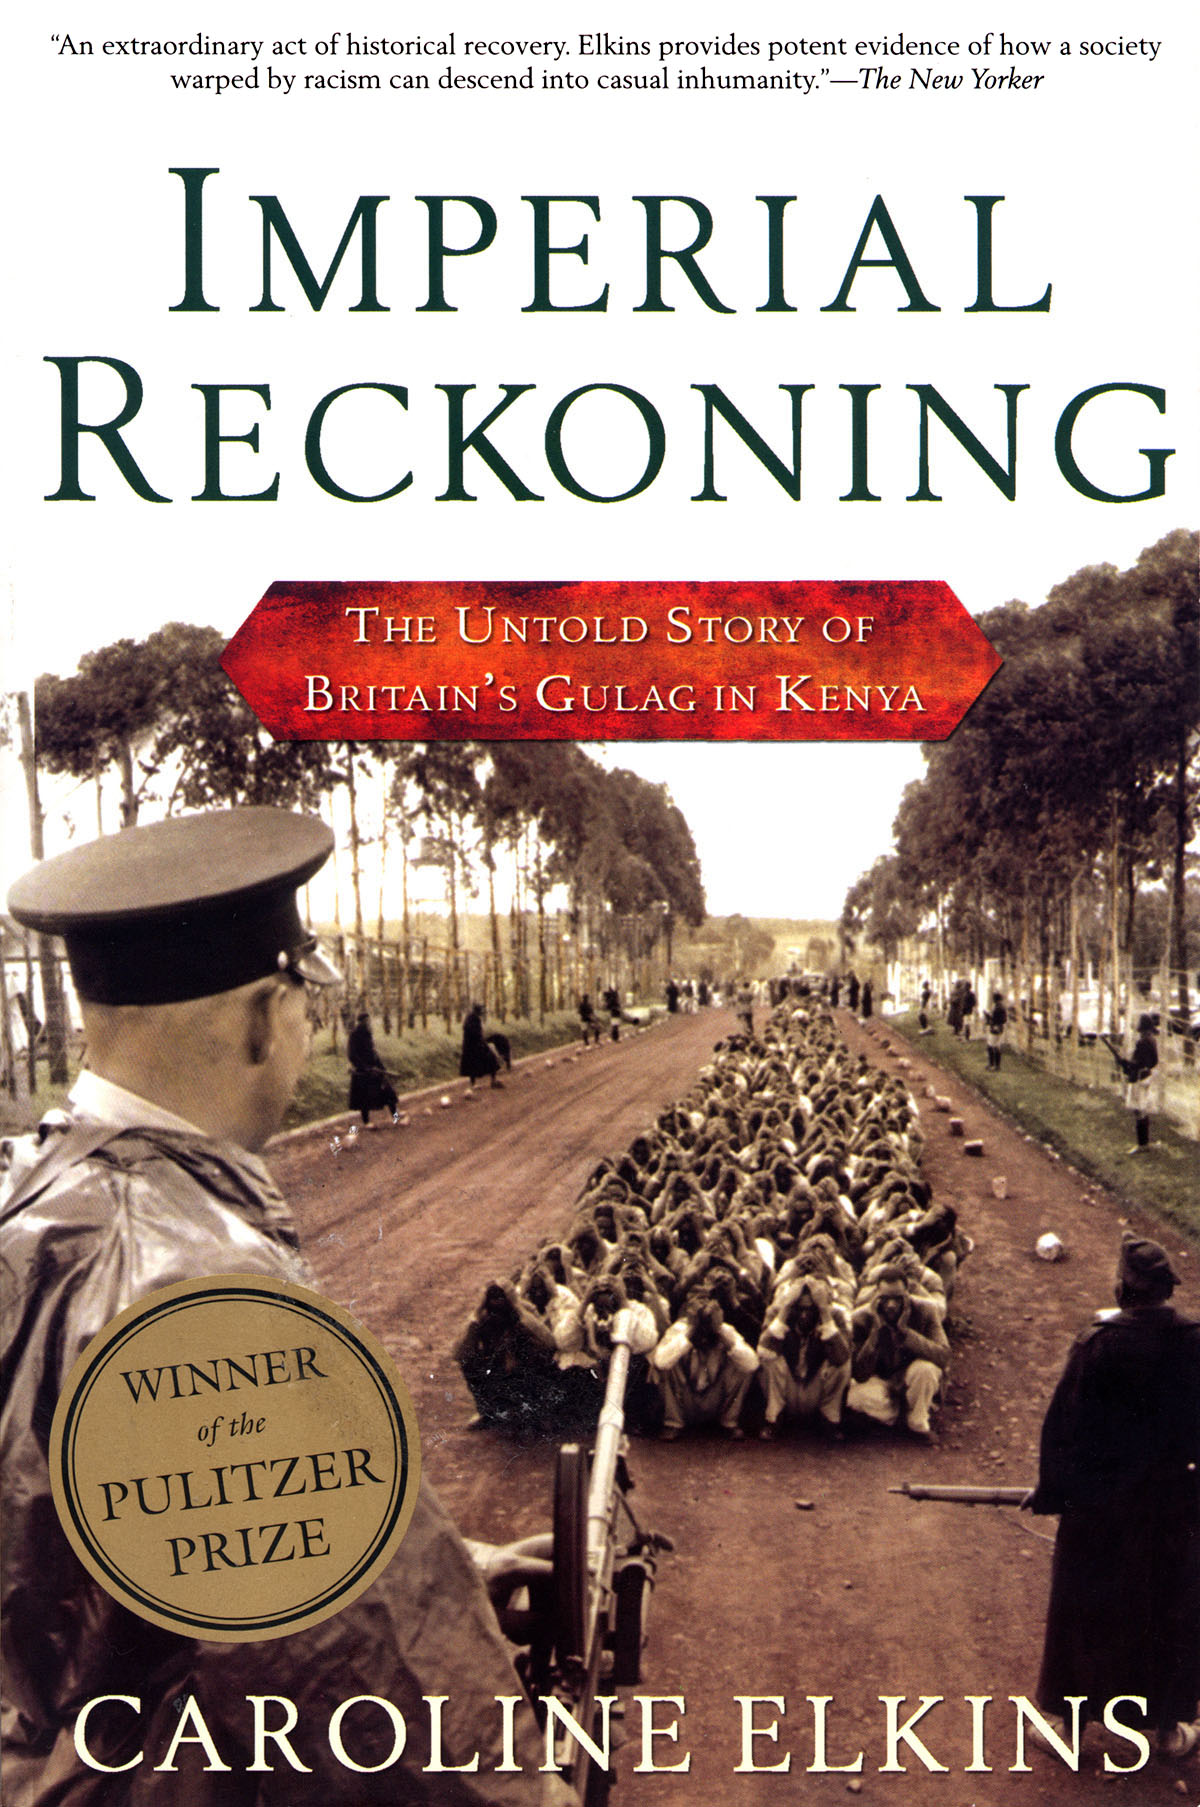 http://www.indymedia.ie/attachments/oct2008/imperial_reckoning_kenya_b.jpg